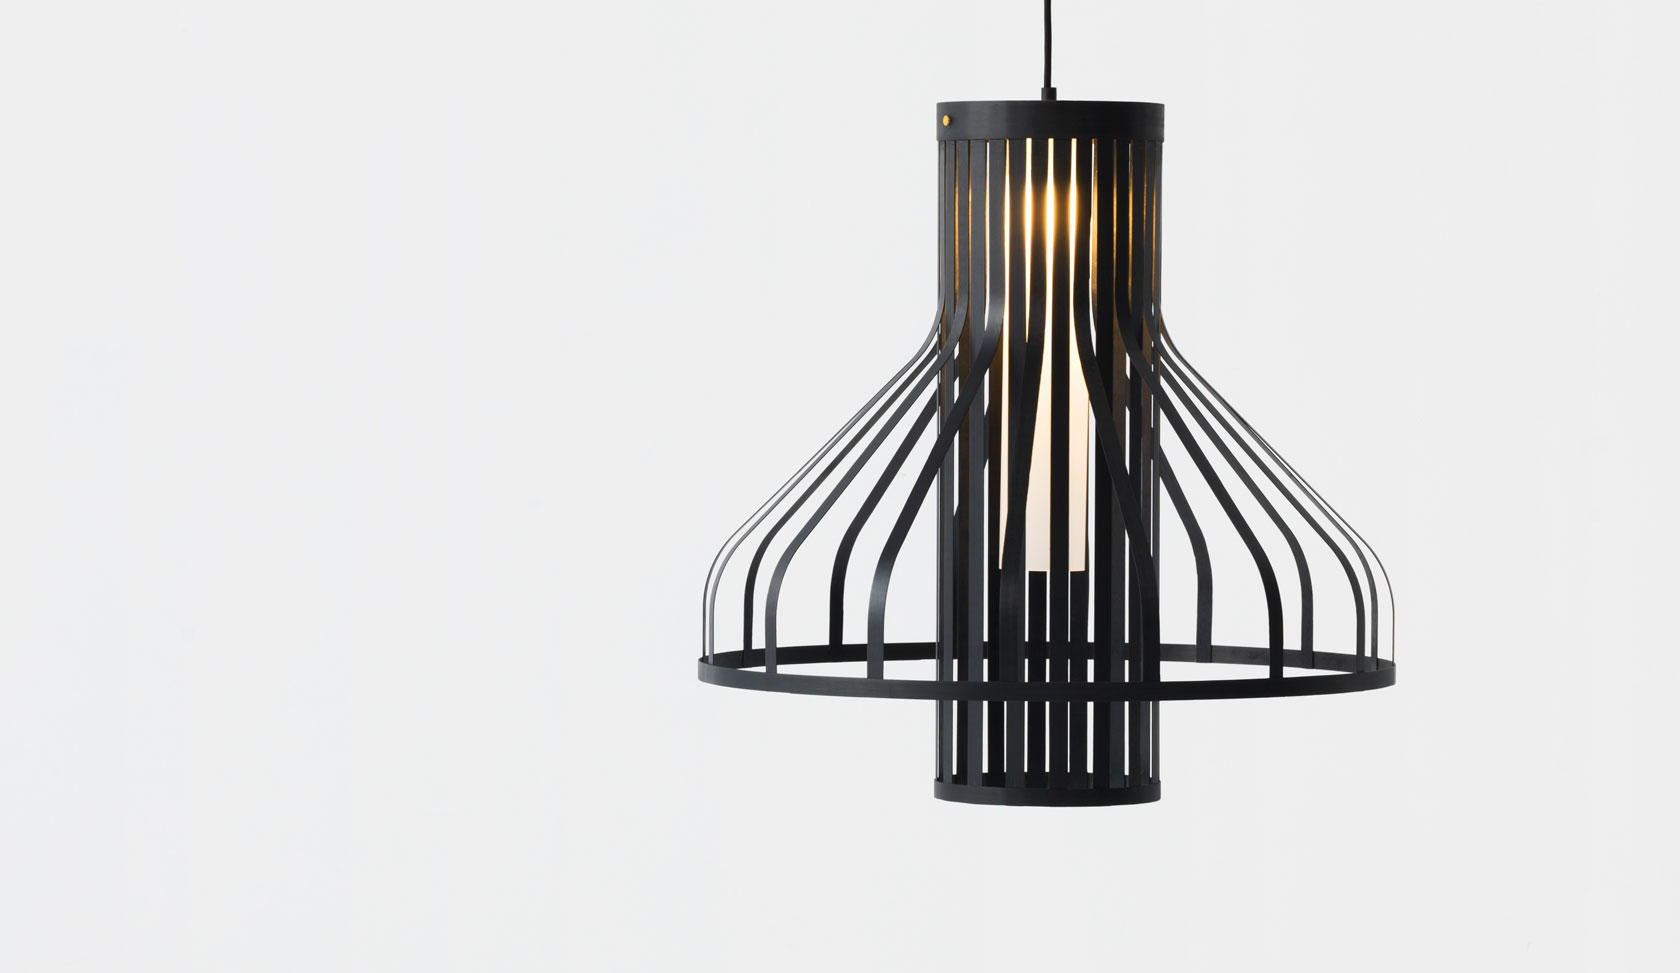 Jamie McLelland's 'Fibre Light Funnel'pendant light for New Zealand brand Resident. Thin strips of carbon fibre are peeled from the central cylinder to create an incredibly lightweight and overtly graphic pendant light.